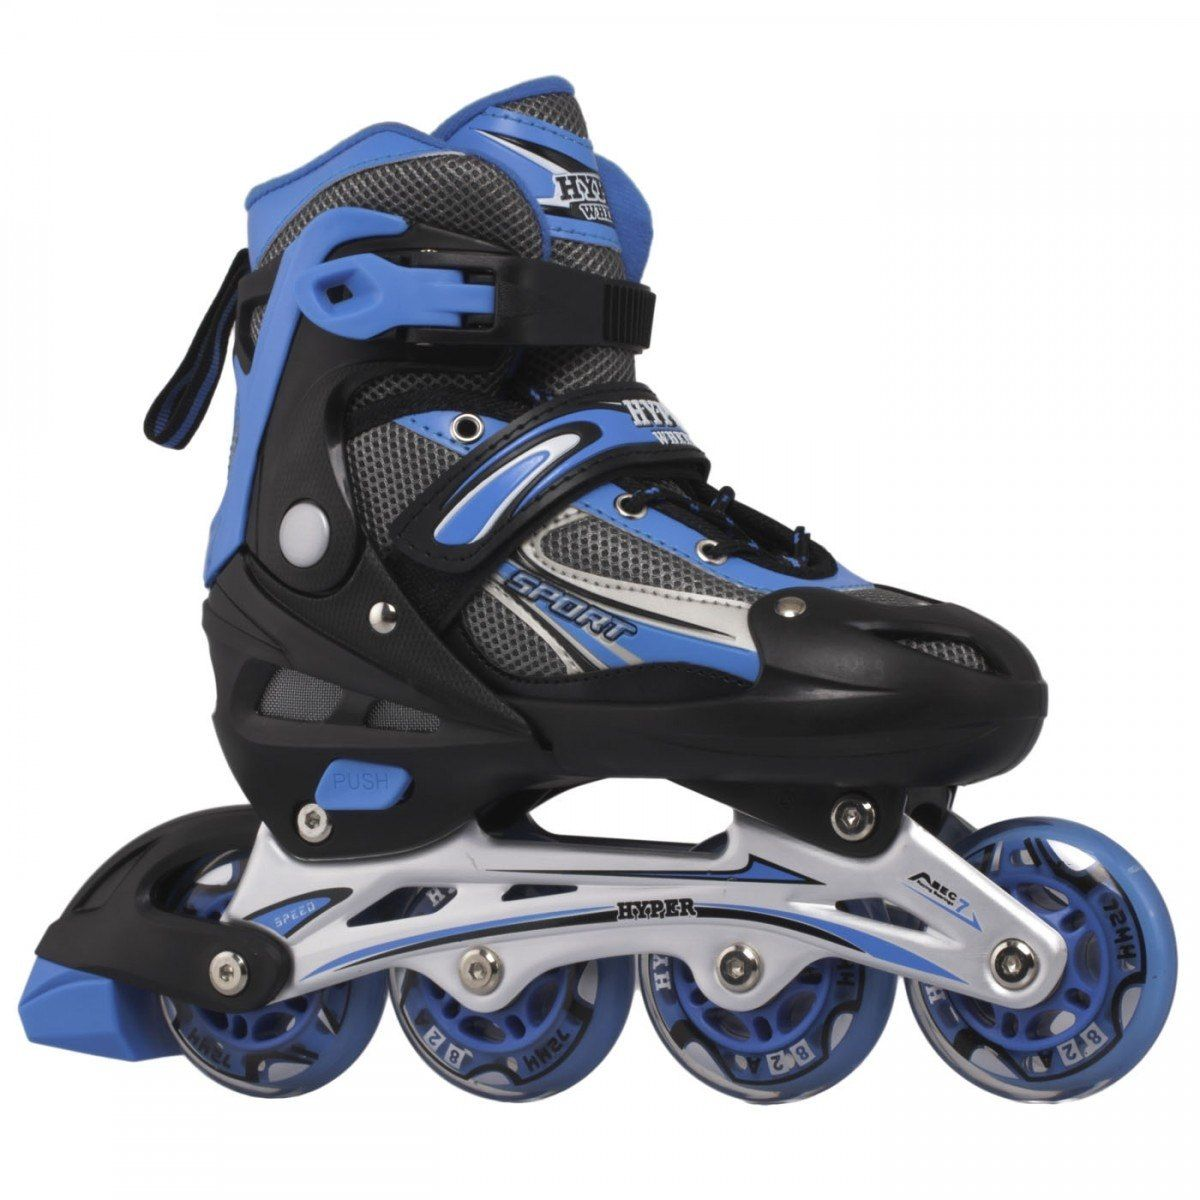 Roller Hyper Sports Regulável 72mm - Azul - 34 ao 37